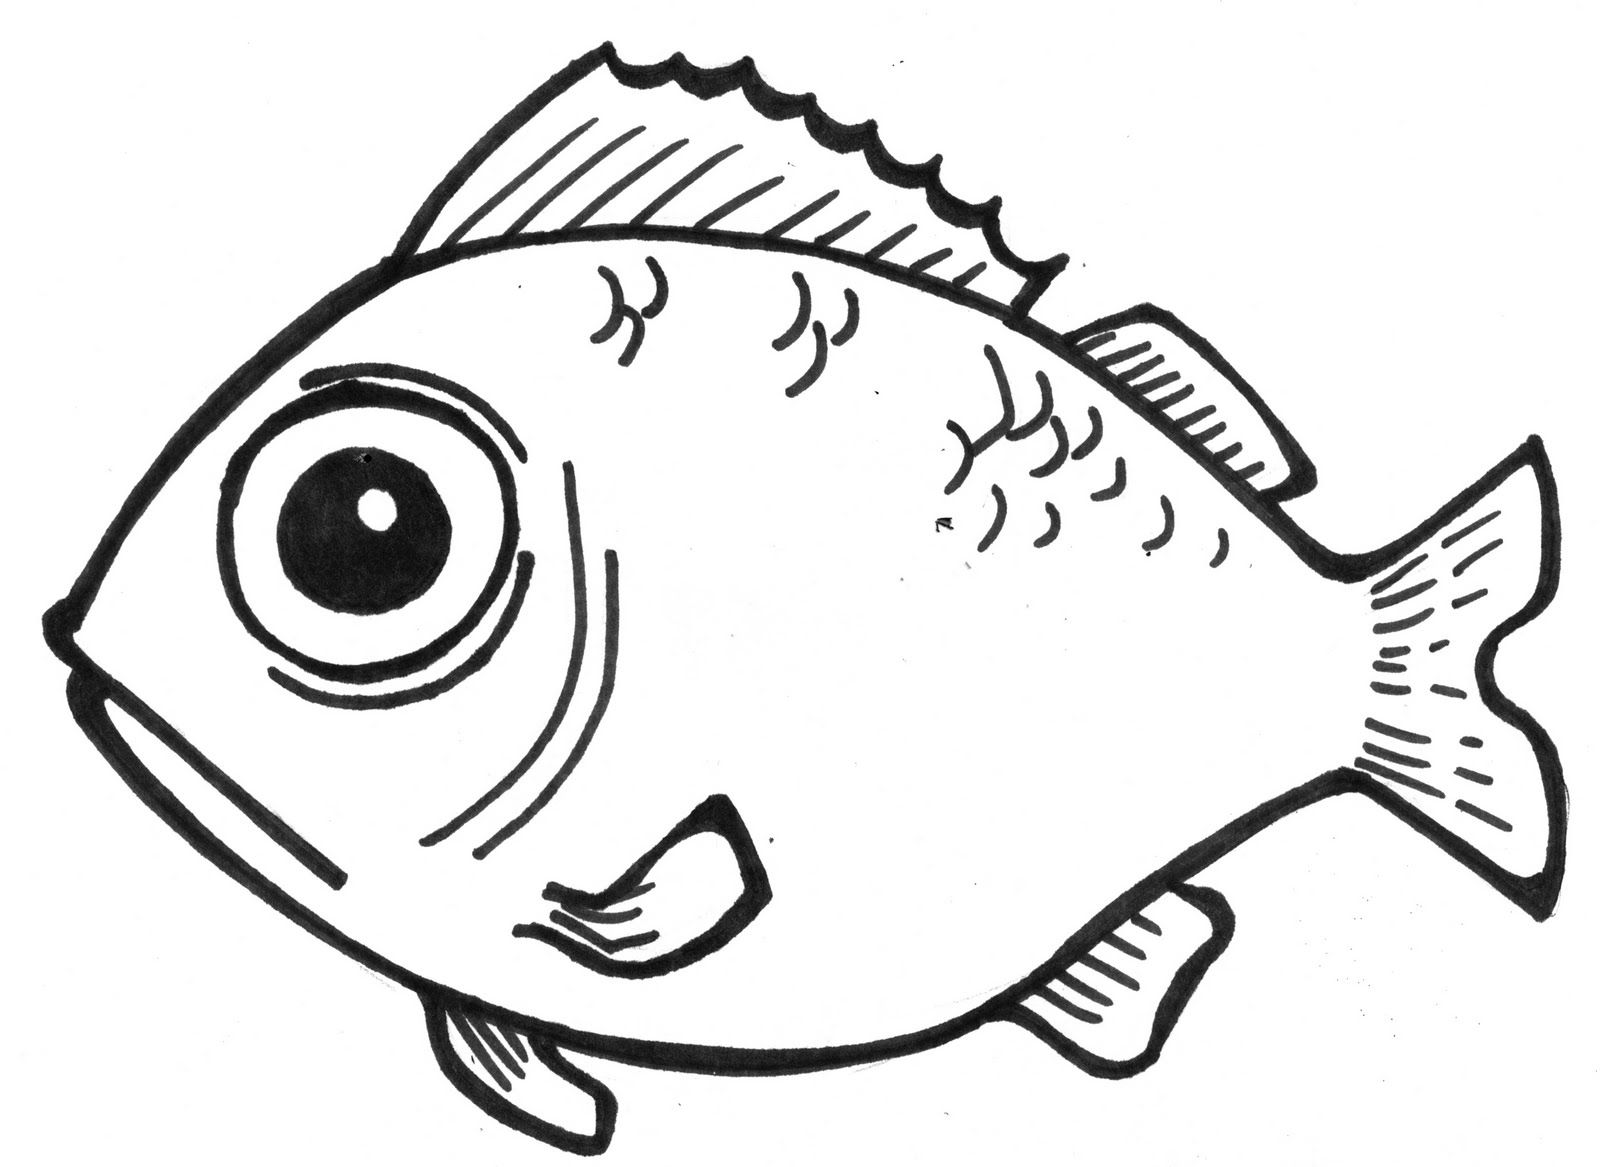 Fish Coloring Pages Fish Pictures Drawings 15396 Hd Wallpapers Fish Drawings Fish Drawing For Kids Cartoon Drawings Of Animals